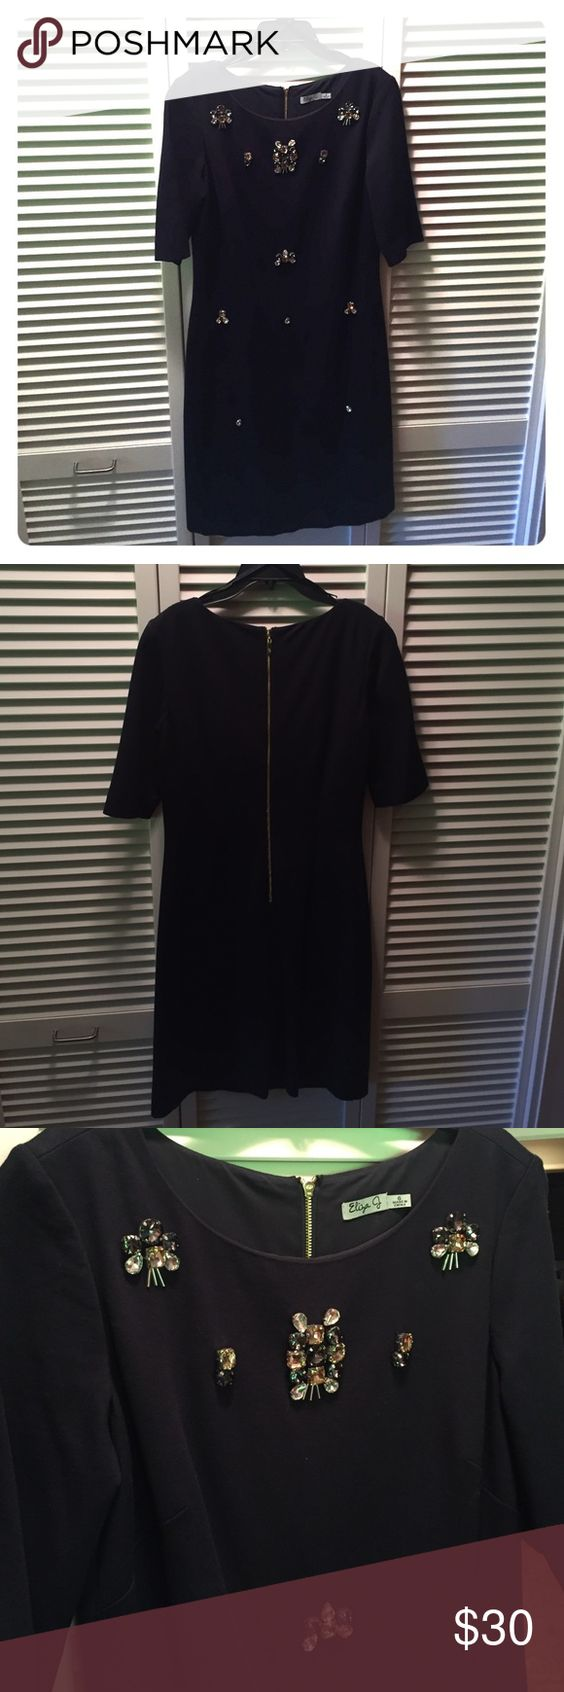 New w/o tags Eliza J beaded sheath dress New without tags navy blue size 6 Eliza j sheath dress beautiful beading at the neckline and down the front of the dress. Rich navy blue, gold zipper down the back of the dress. Fully lined. Eliza J Dresses Midi